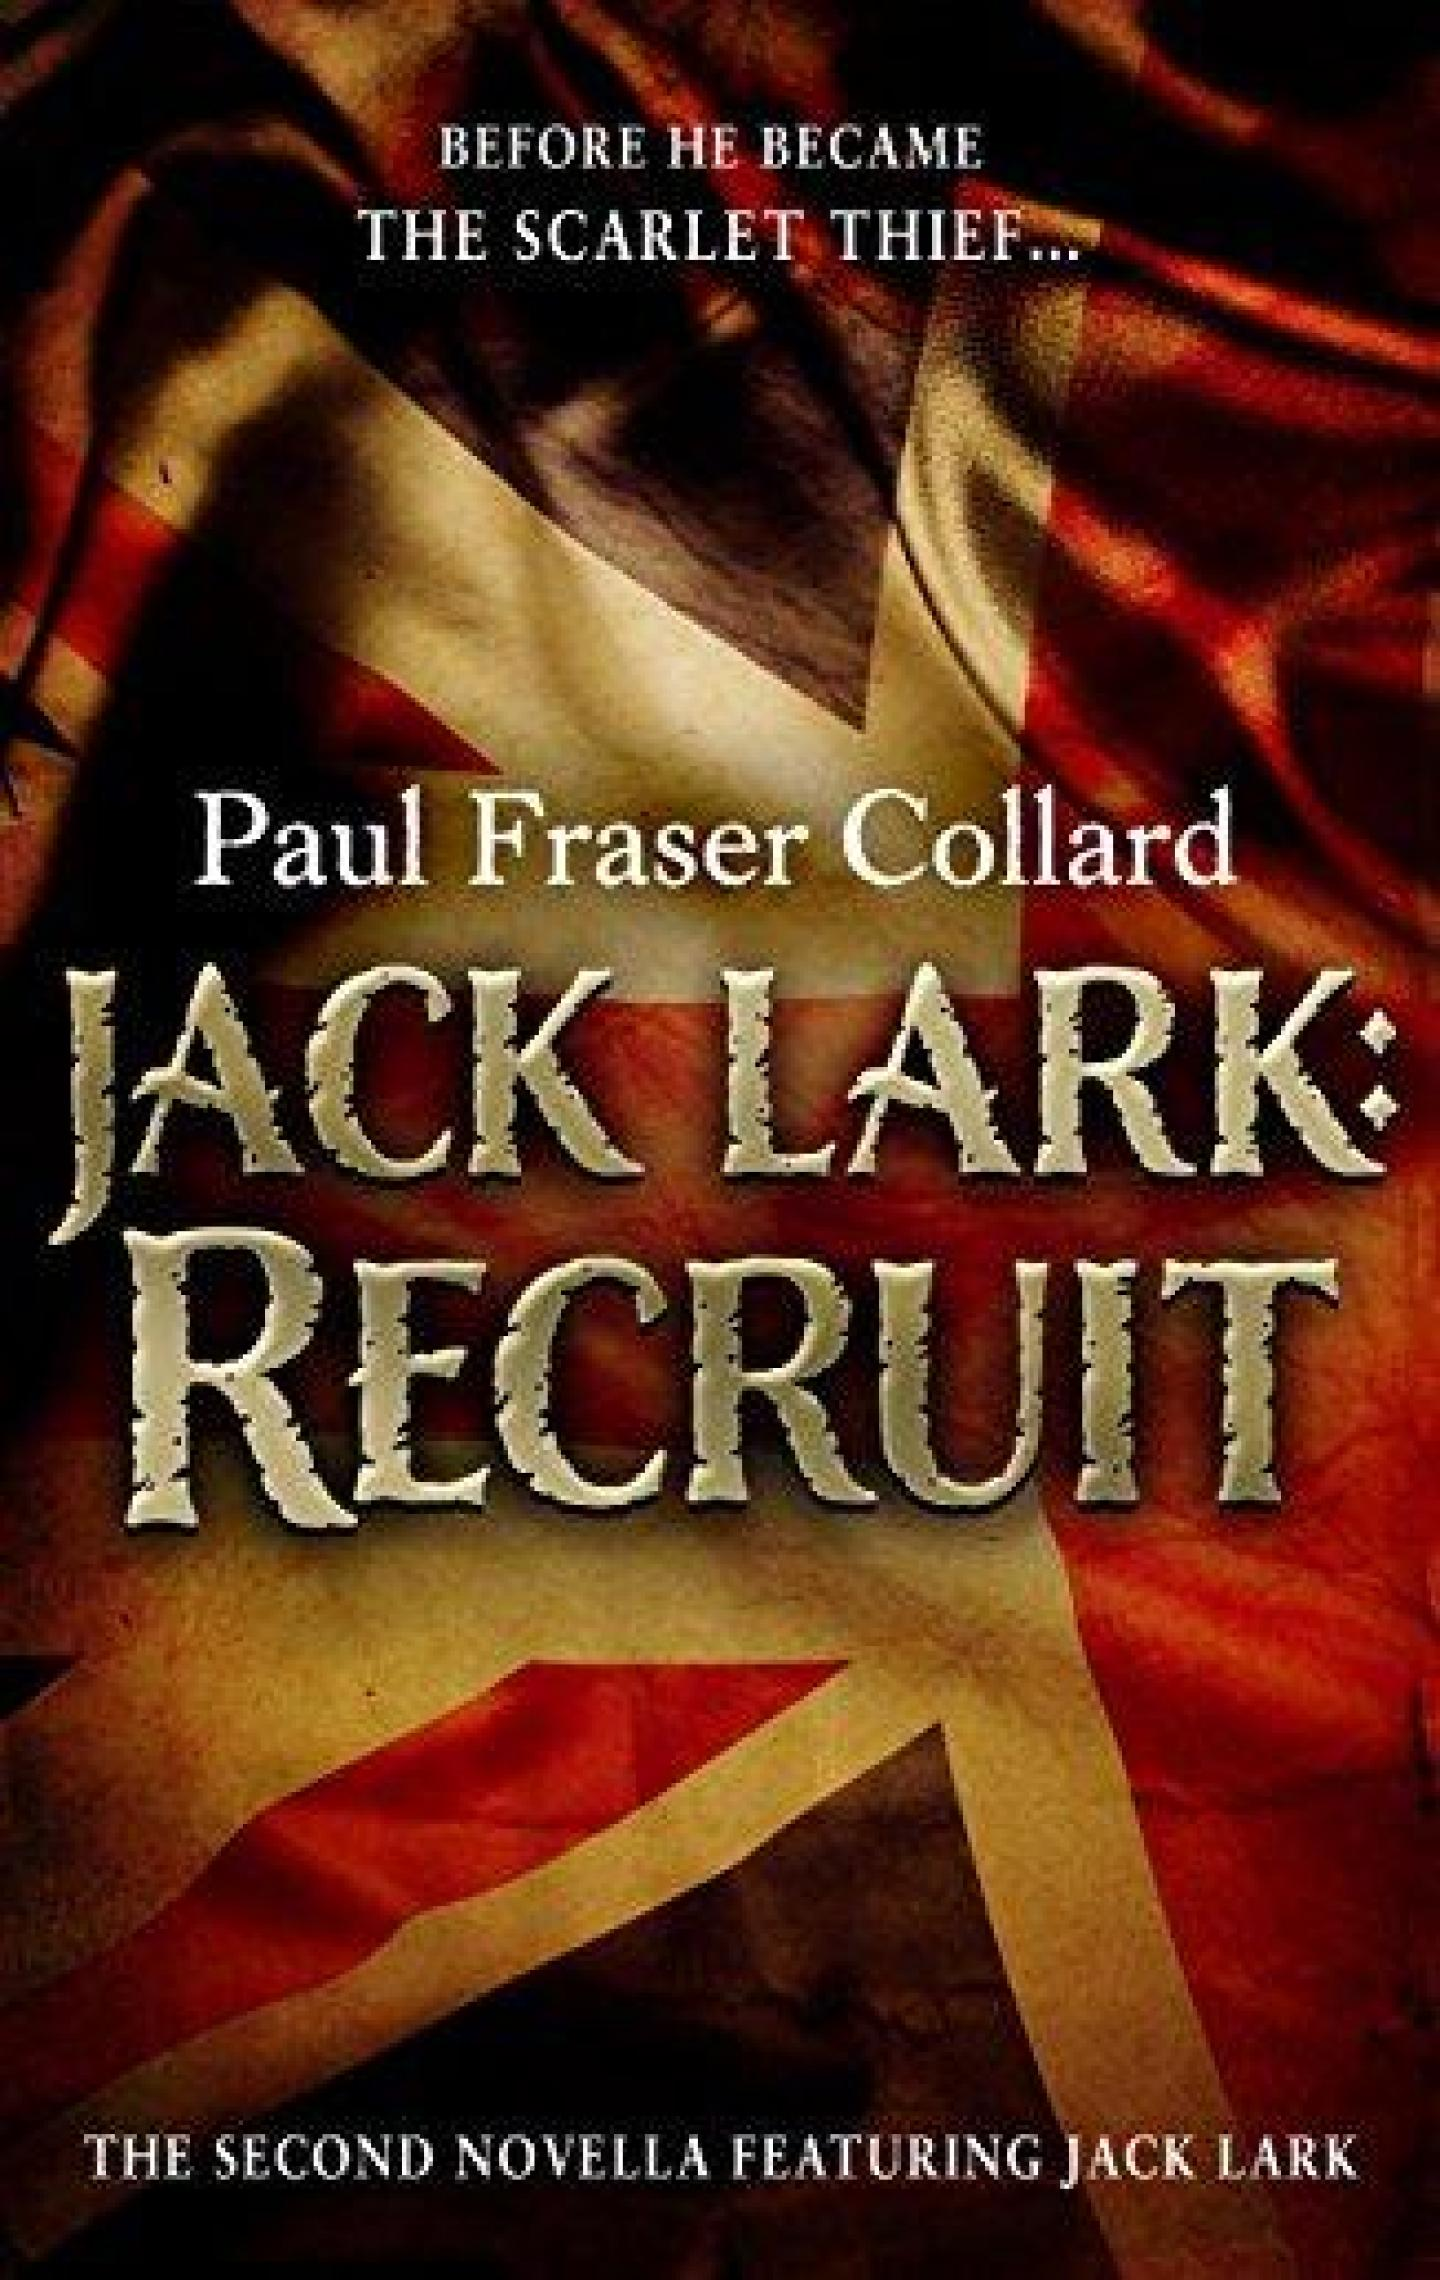 Jack Lark: Recruit